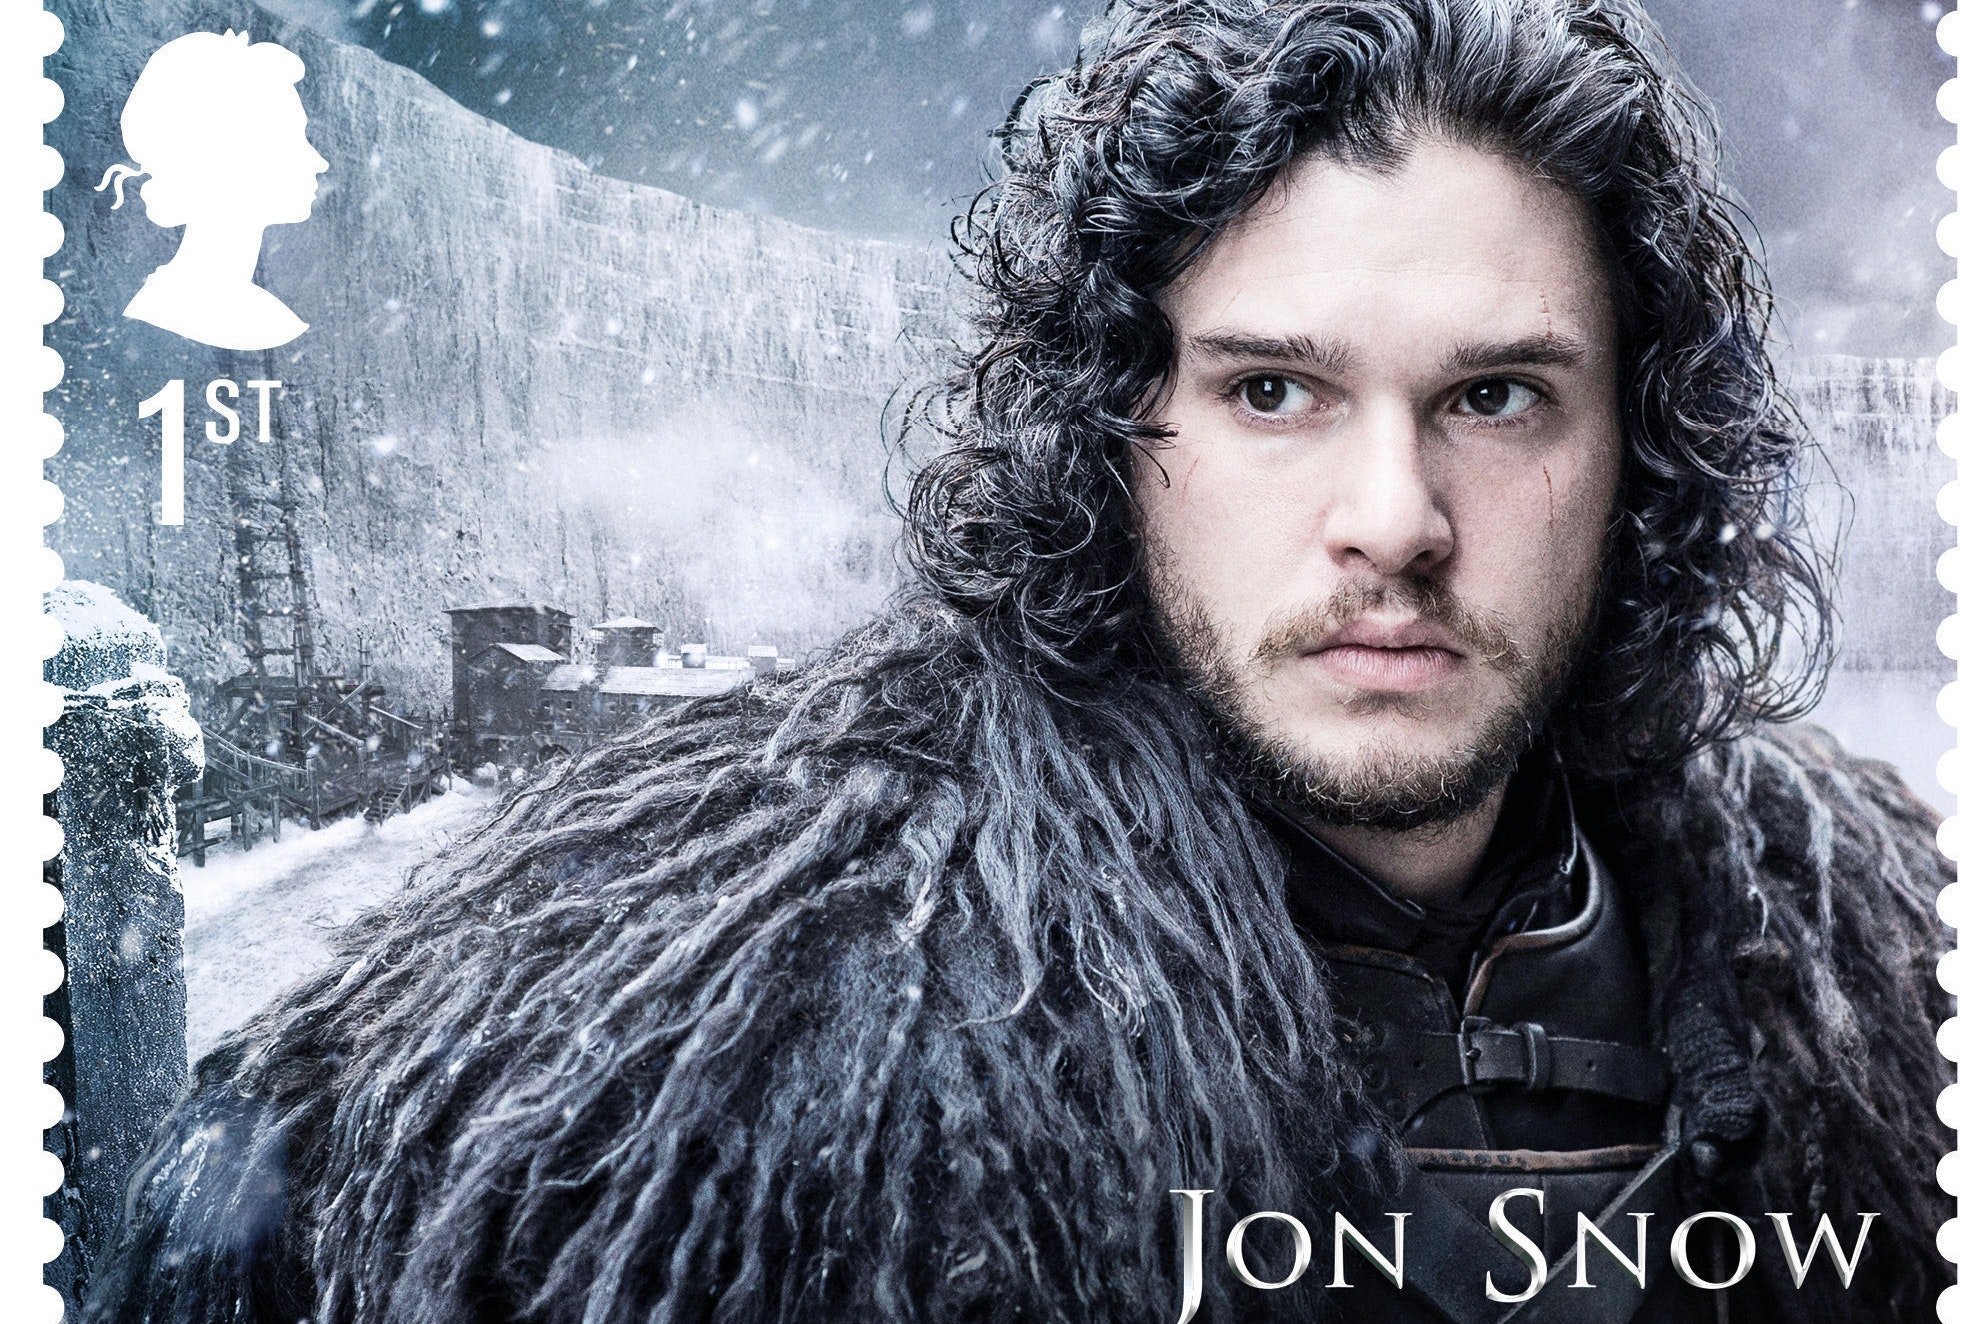 Undated handout Royal Mail photo from their set of Game of Thrones stamps, featuring Jon Snow, available from January 23, 2018.